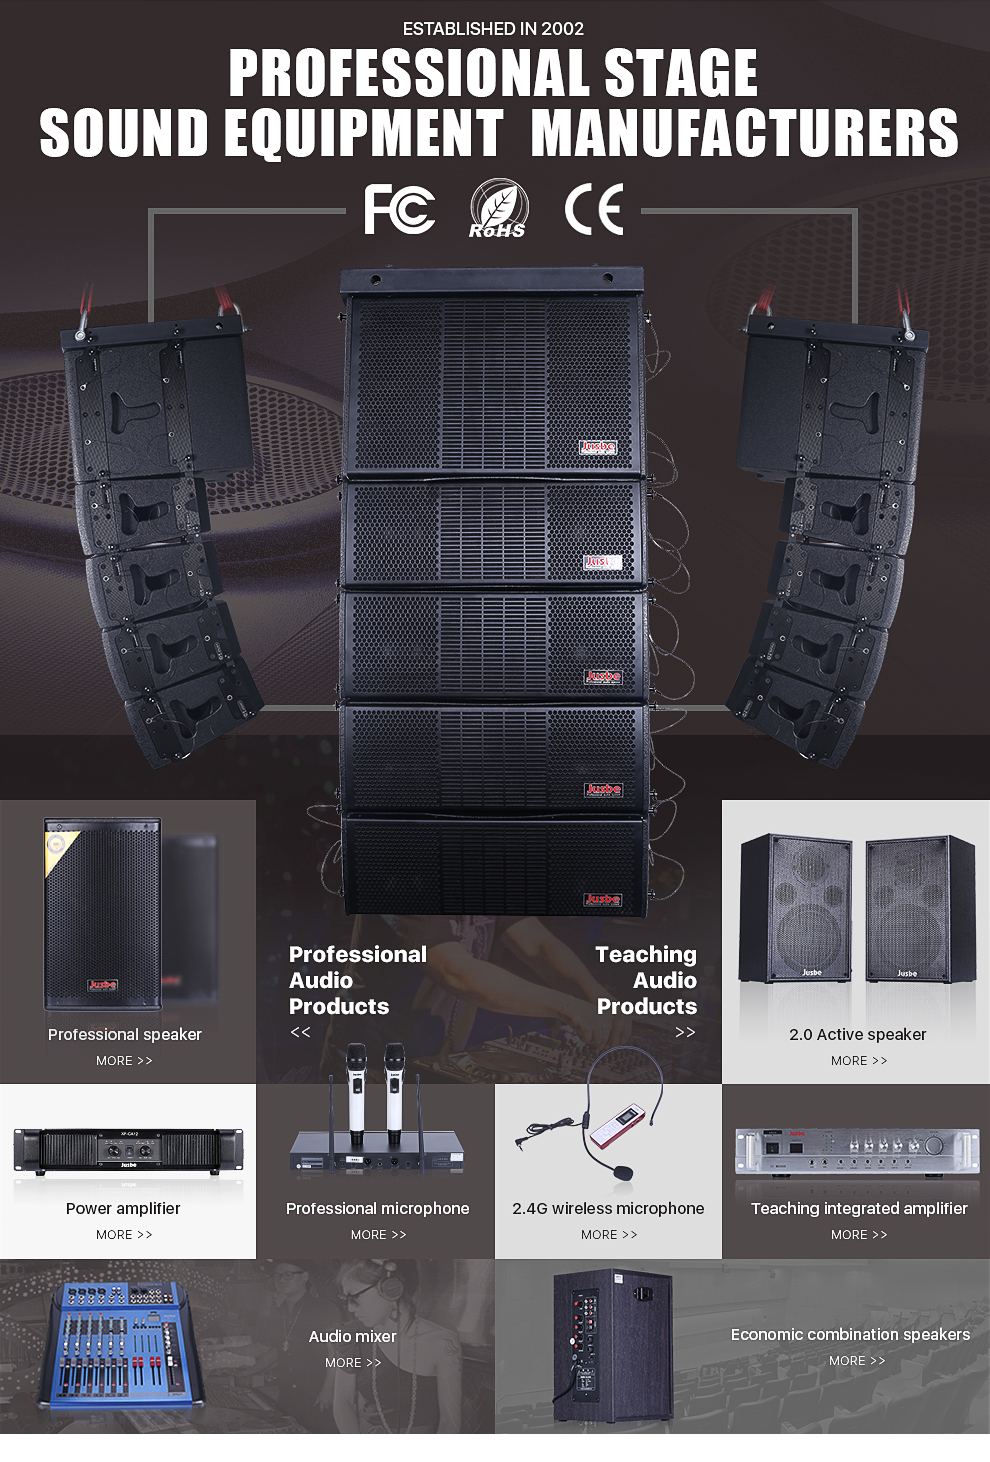 Fungsi Manajemen Sound System : fungsi, manajemen, sound, system, Guangzhou, Jusbe, Electronic, Technology, Teaching, Series, Combined, Amplifier,teching, Passive, Speakers